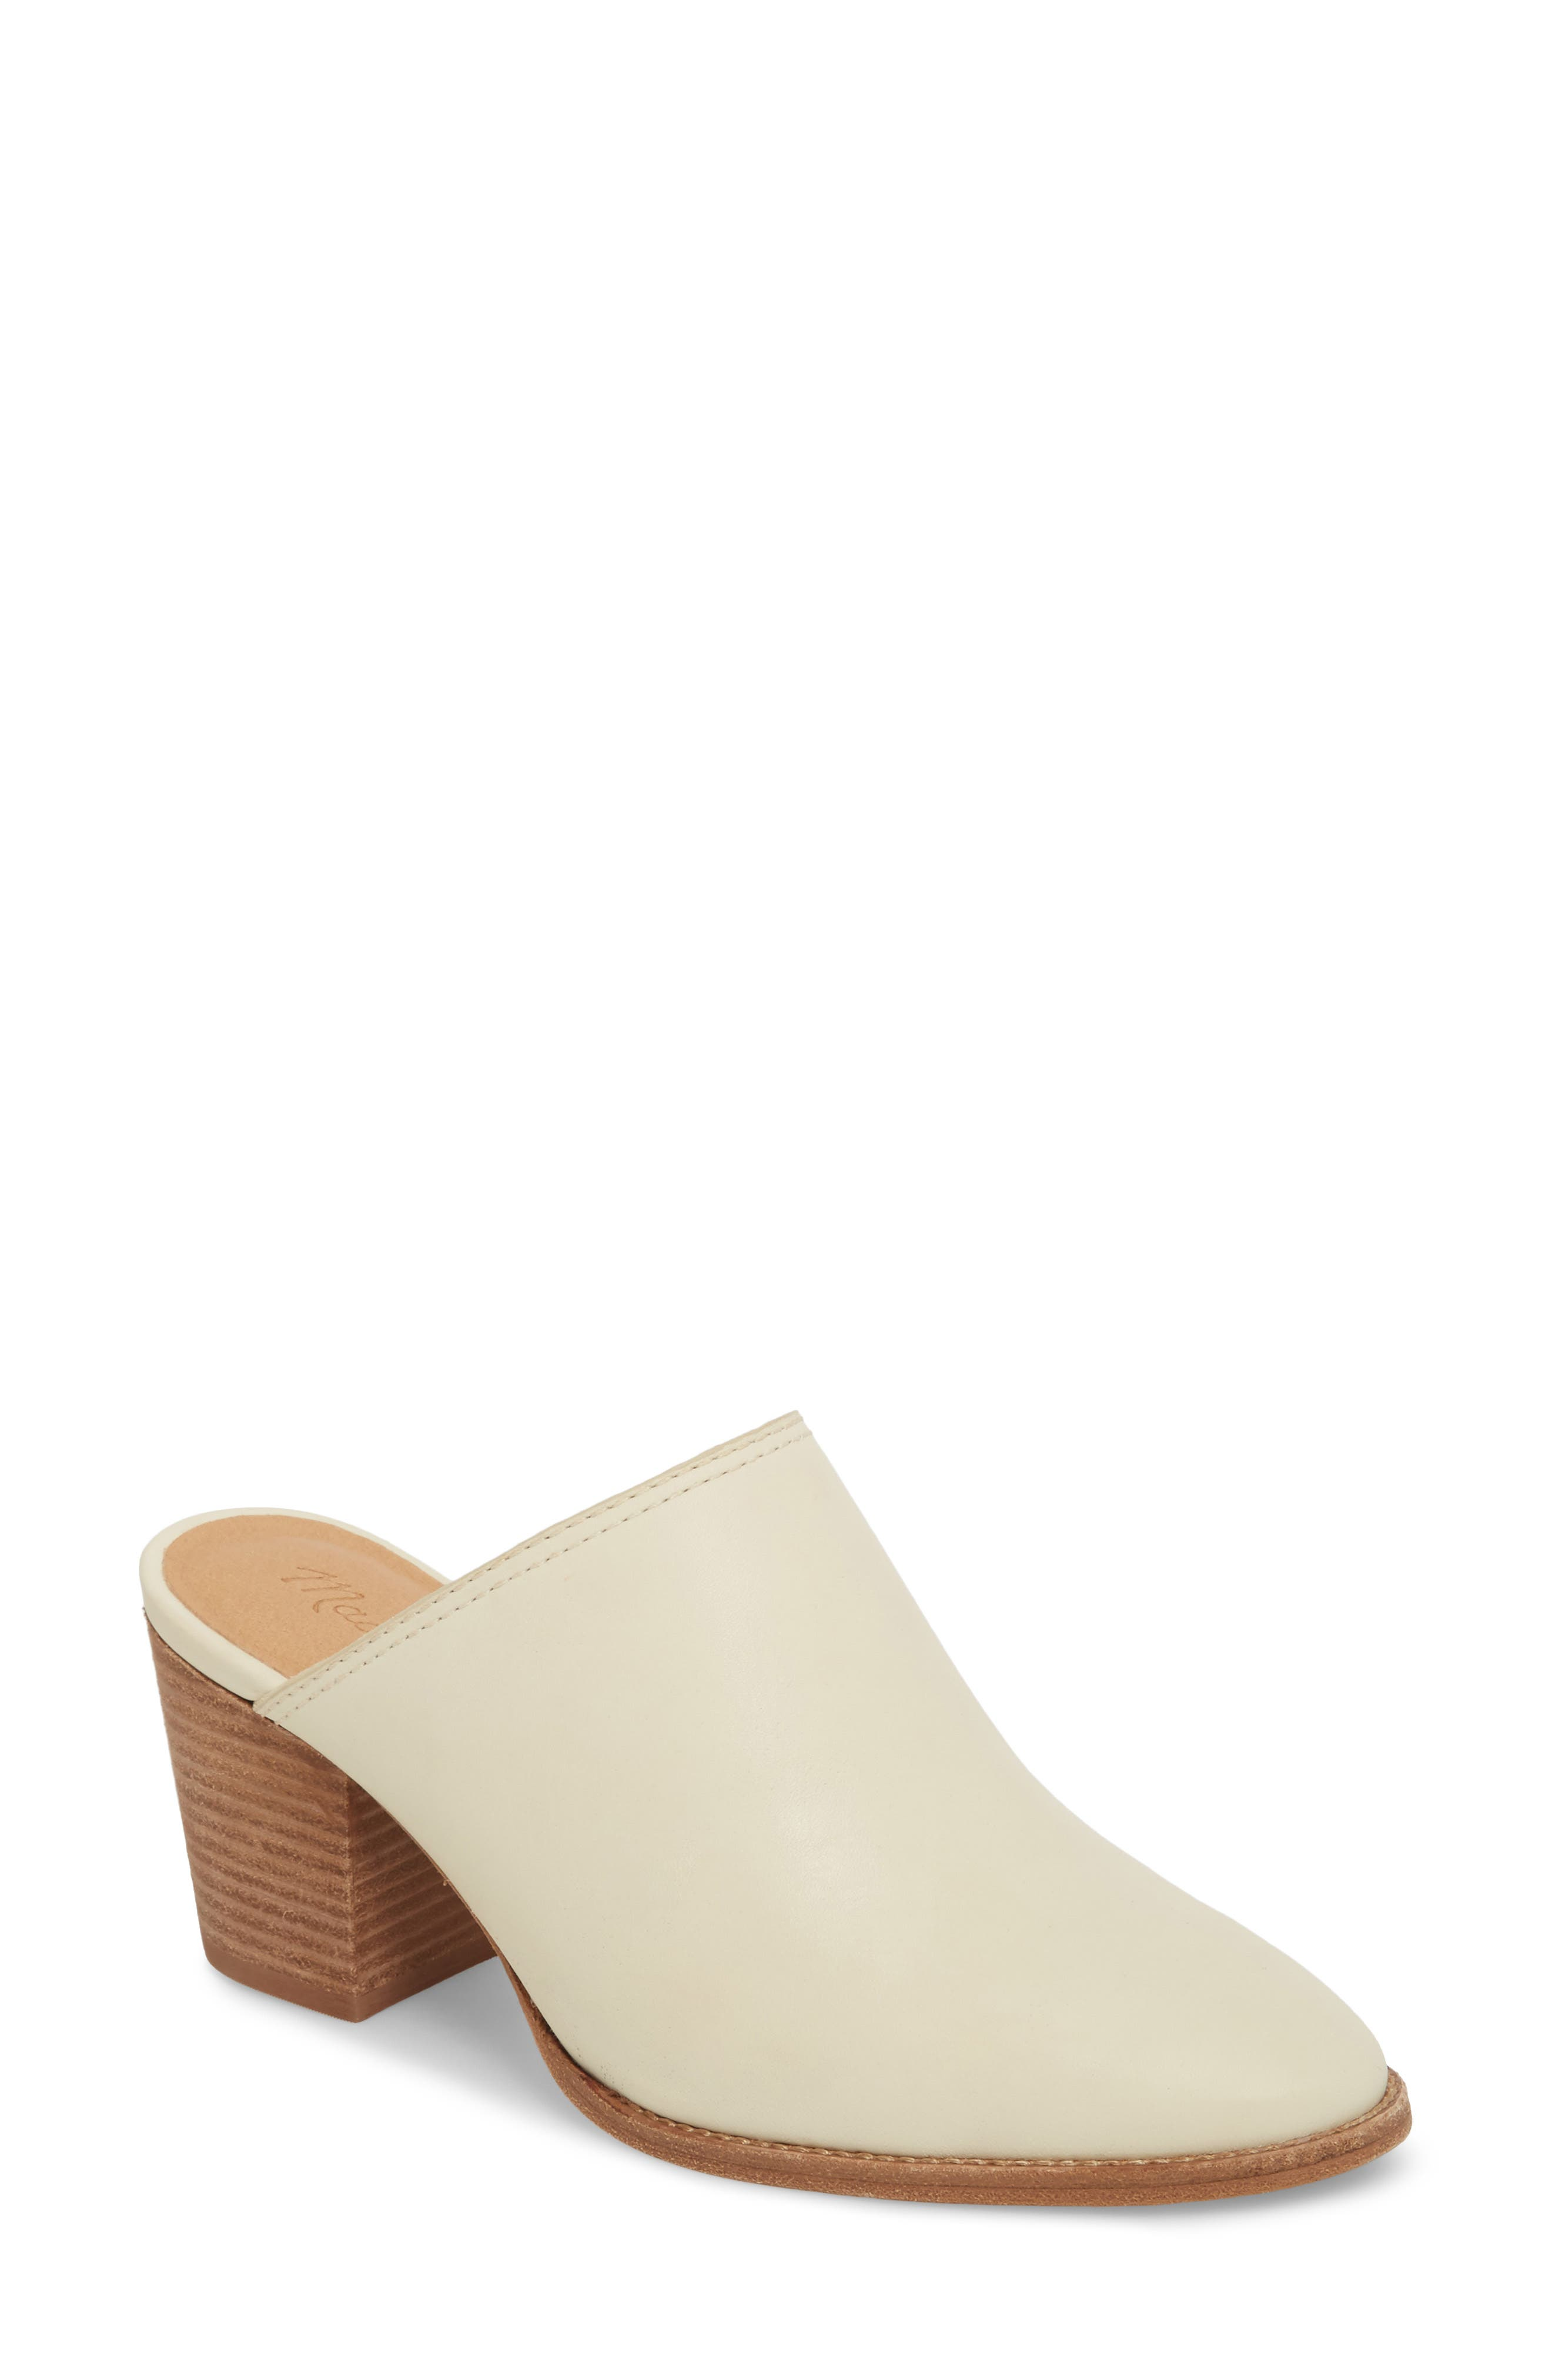 Madewell The Harper Mule (Women)